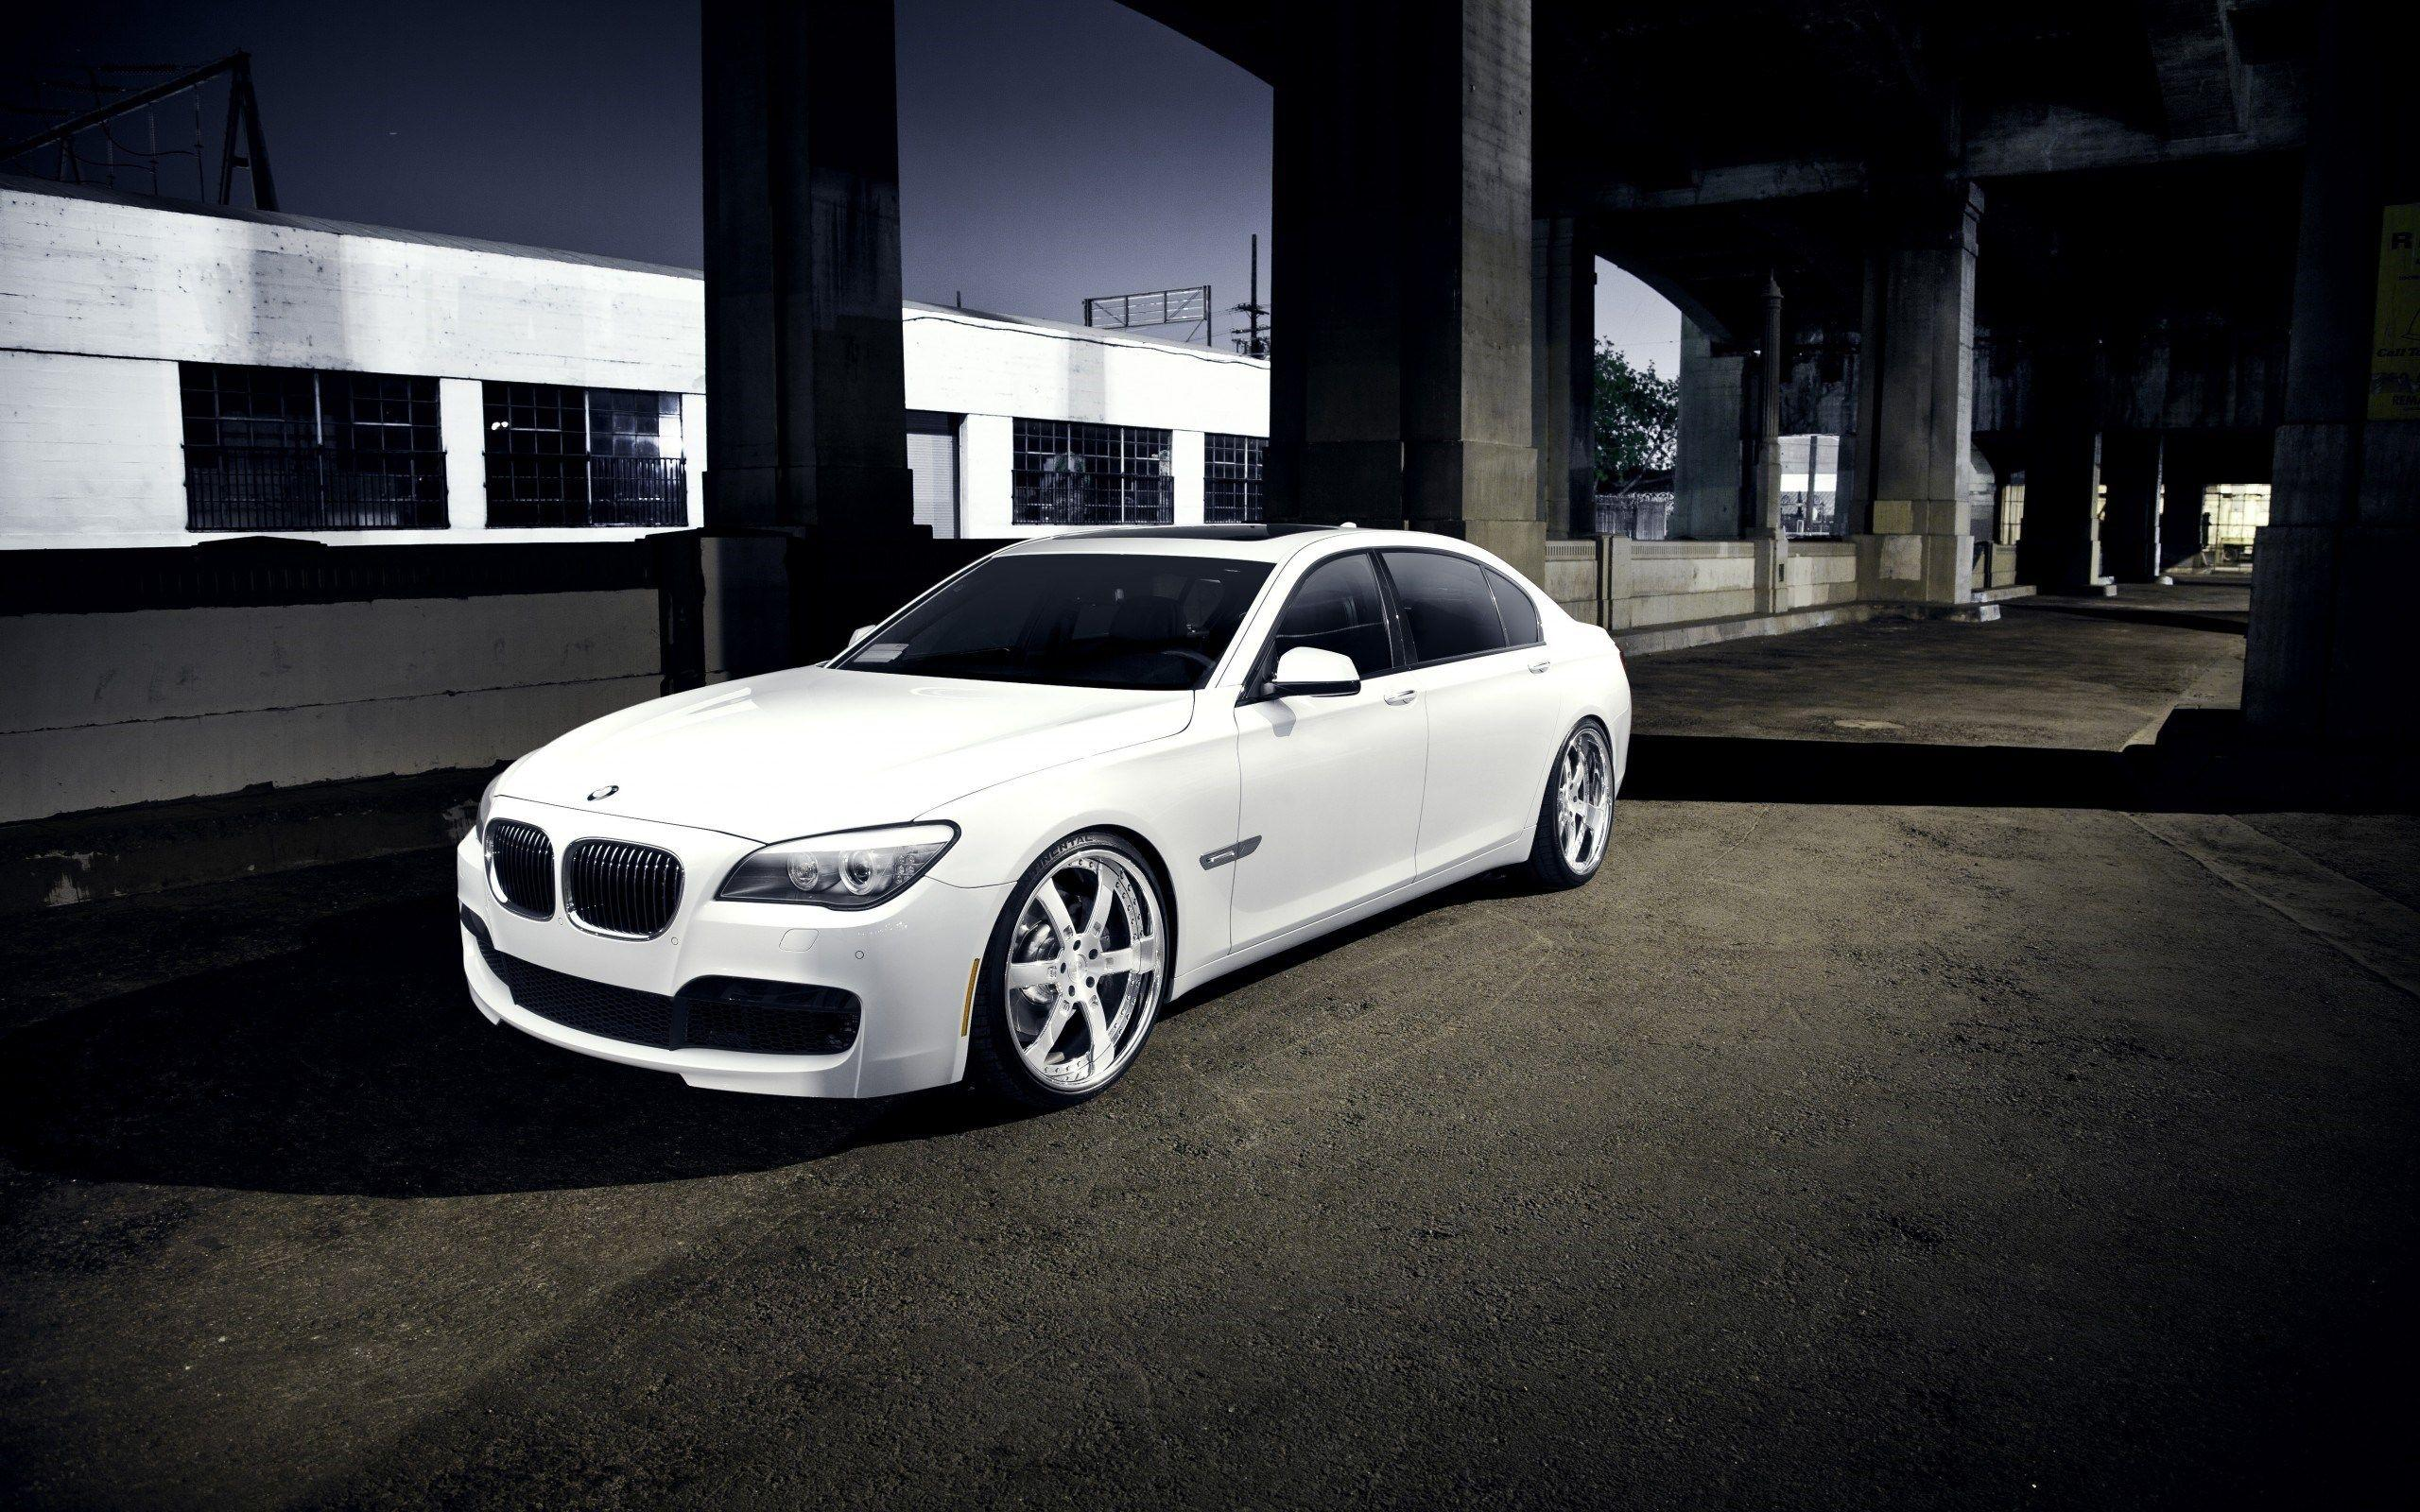 Beautiful White BMW 7 Series Wallpapers 43420 2560x1600 px